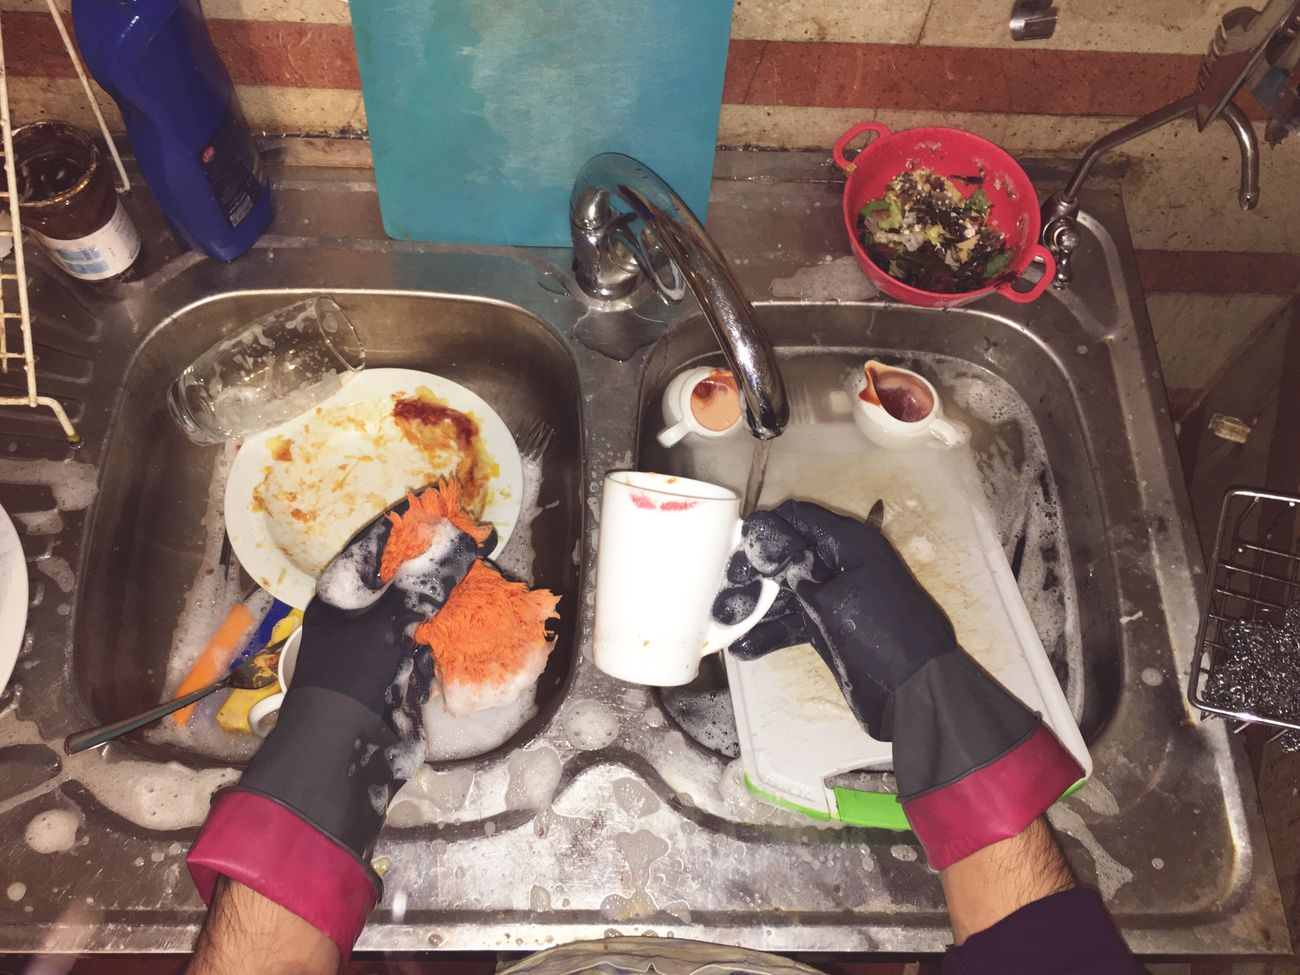 Dishwashing High Angle View Real People One Person Cooking Pan Human Hand Holding Food Day Camping Stove Human Body Part Indoors